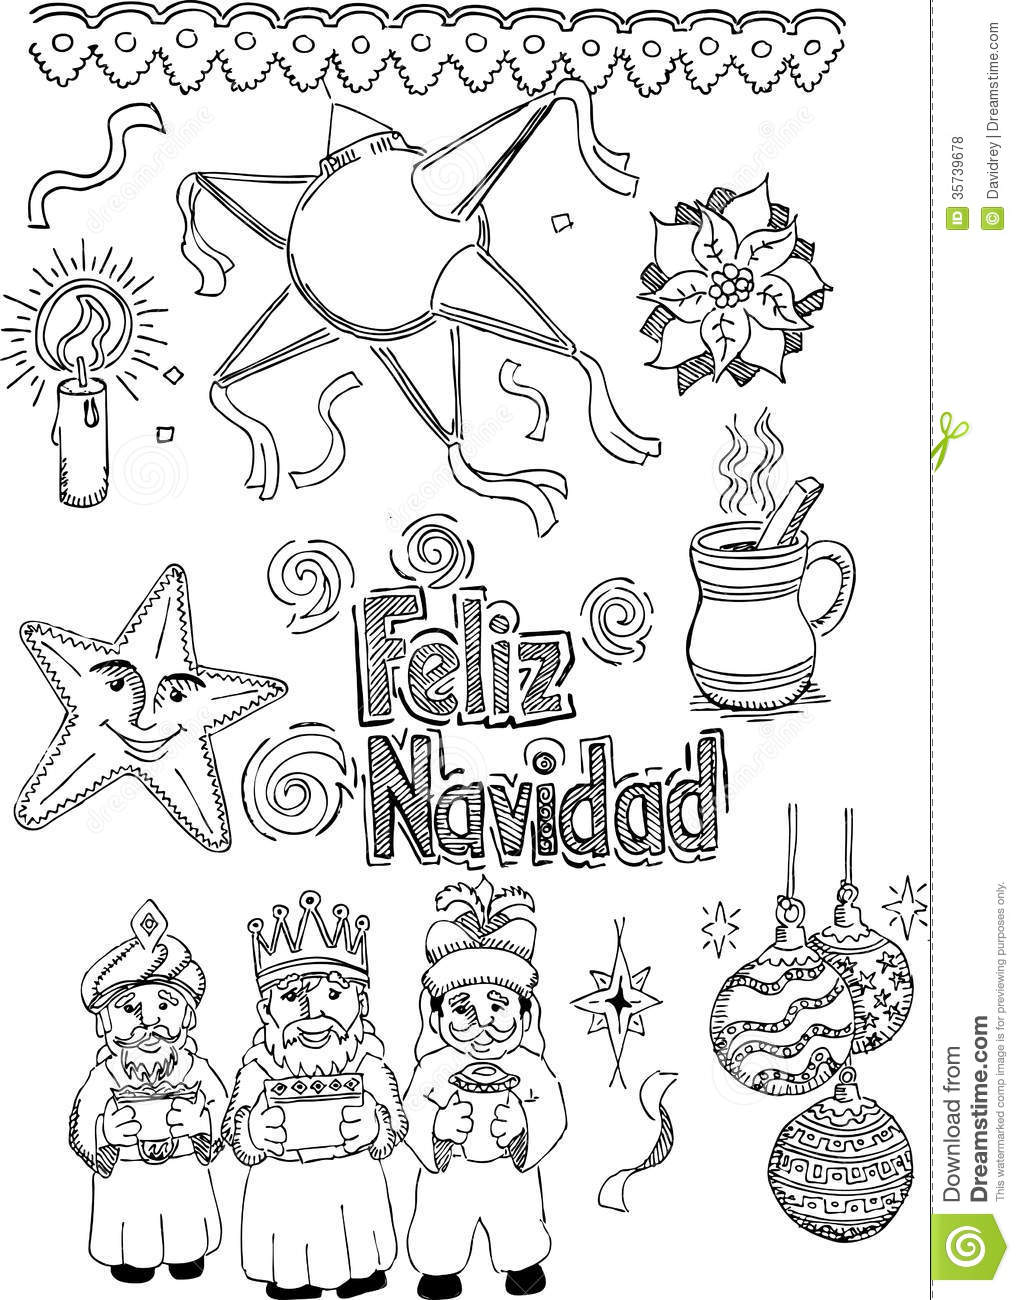 Mexican Christmas Royalty Free Stock Photos Image 35739678